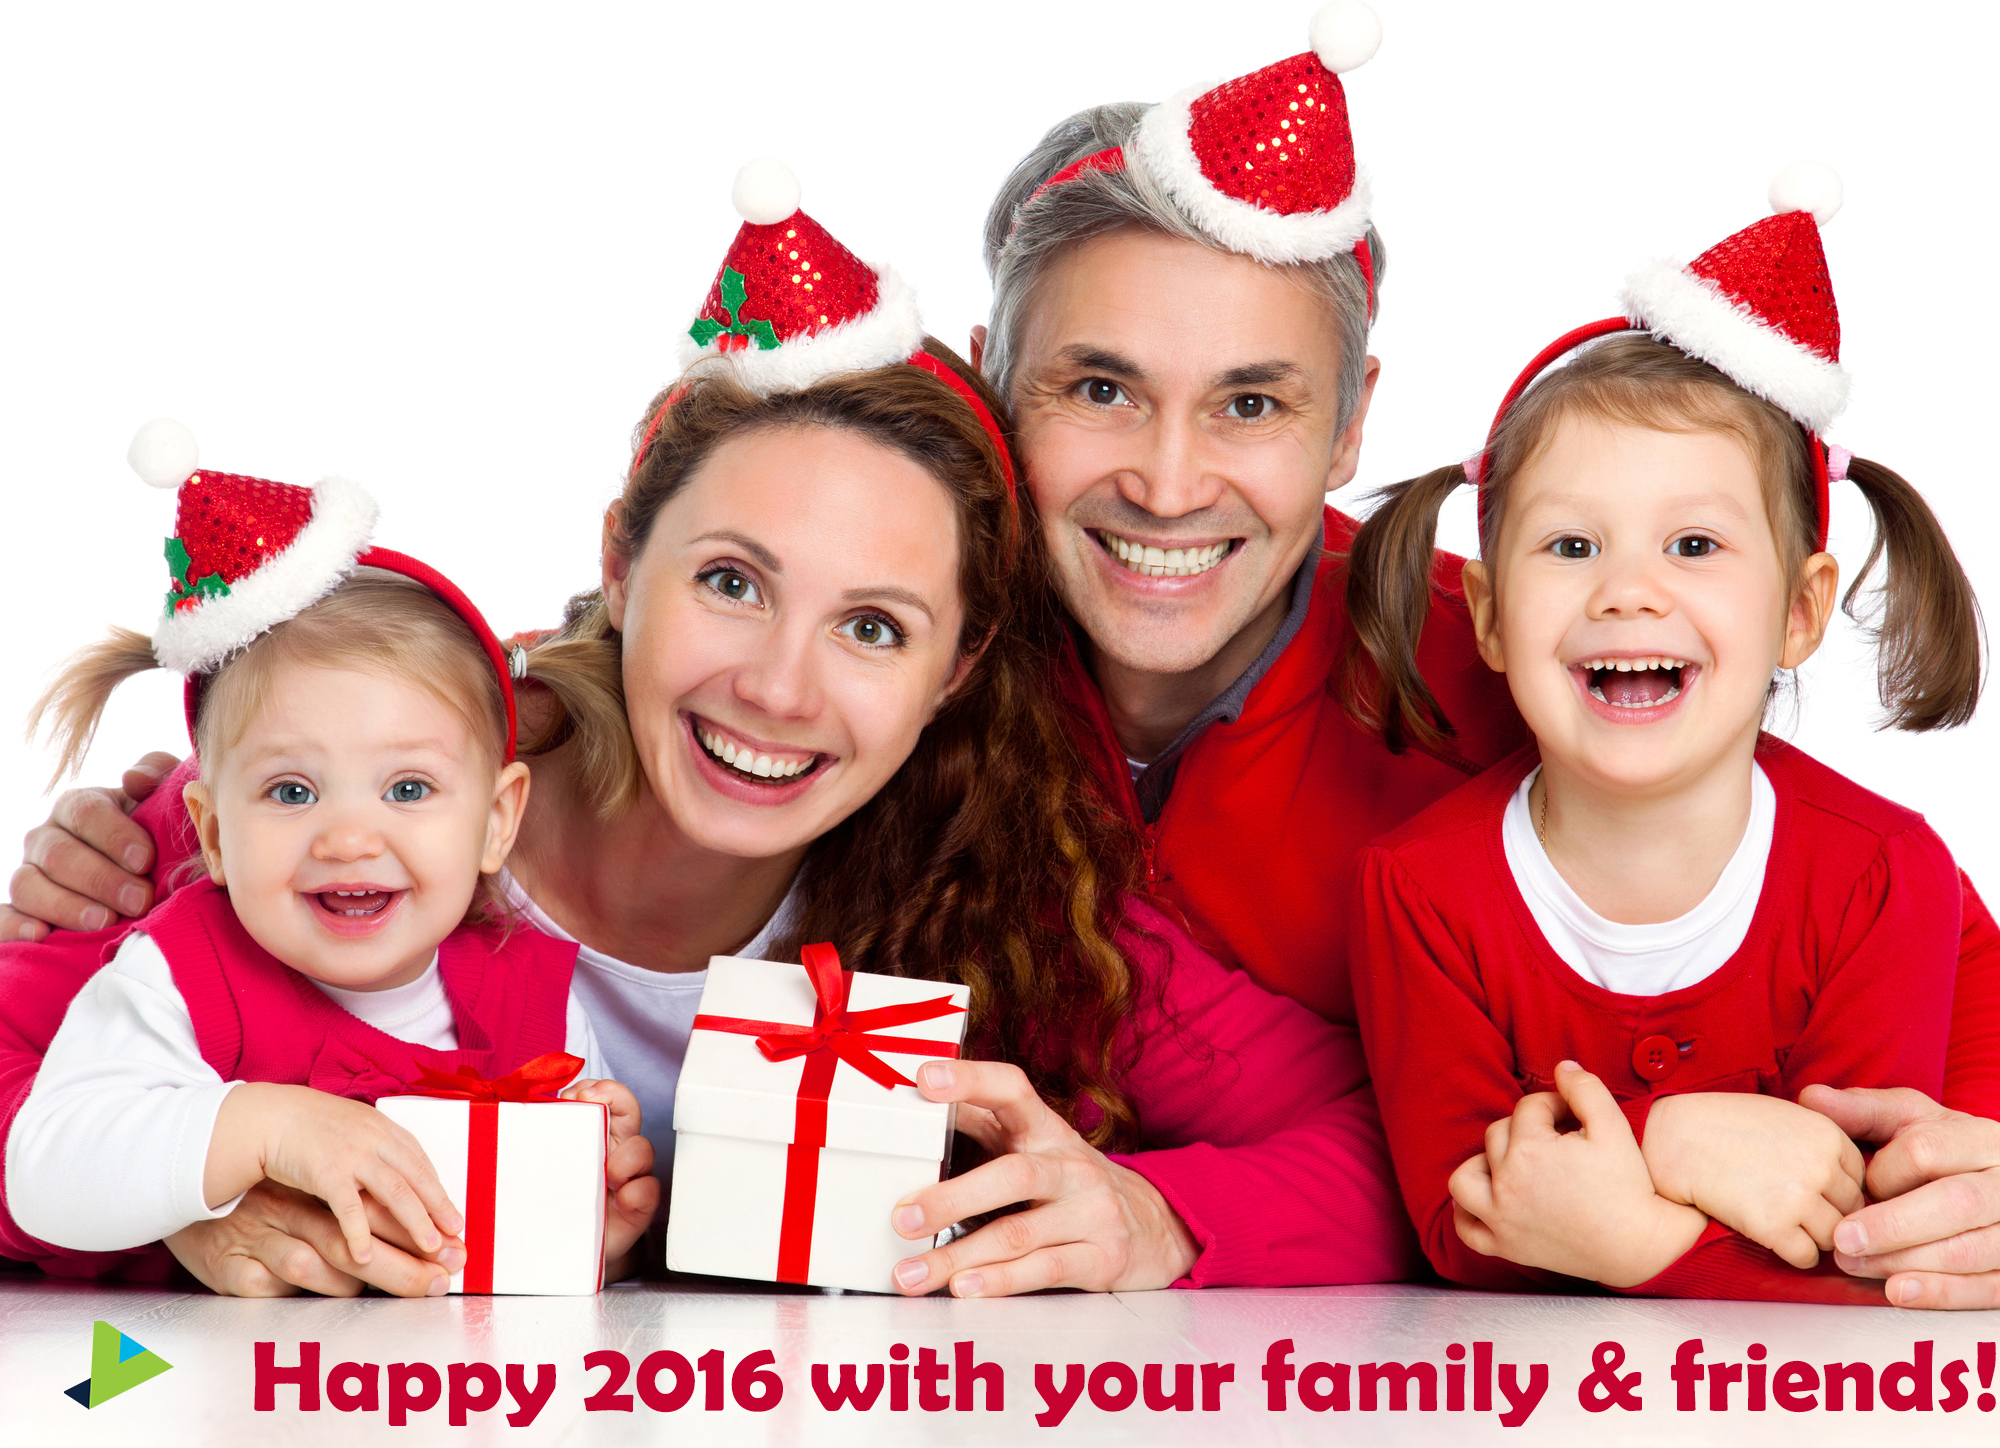 Spend more Time with Family and Friends in the New Year